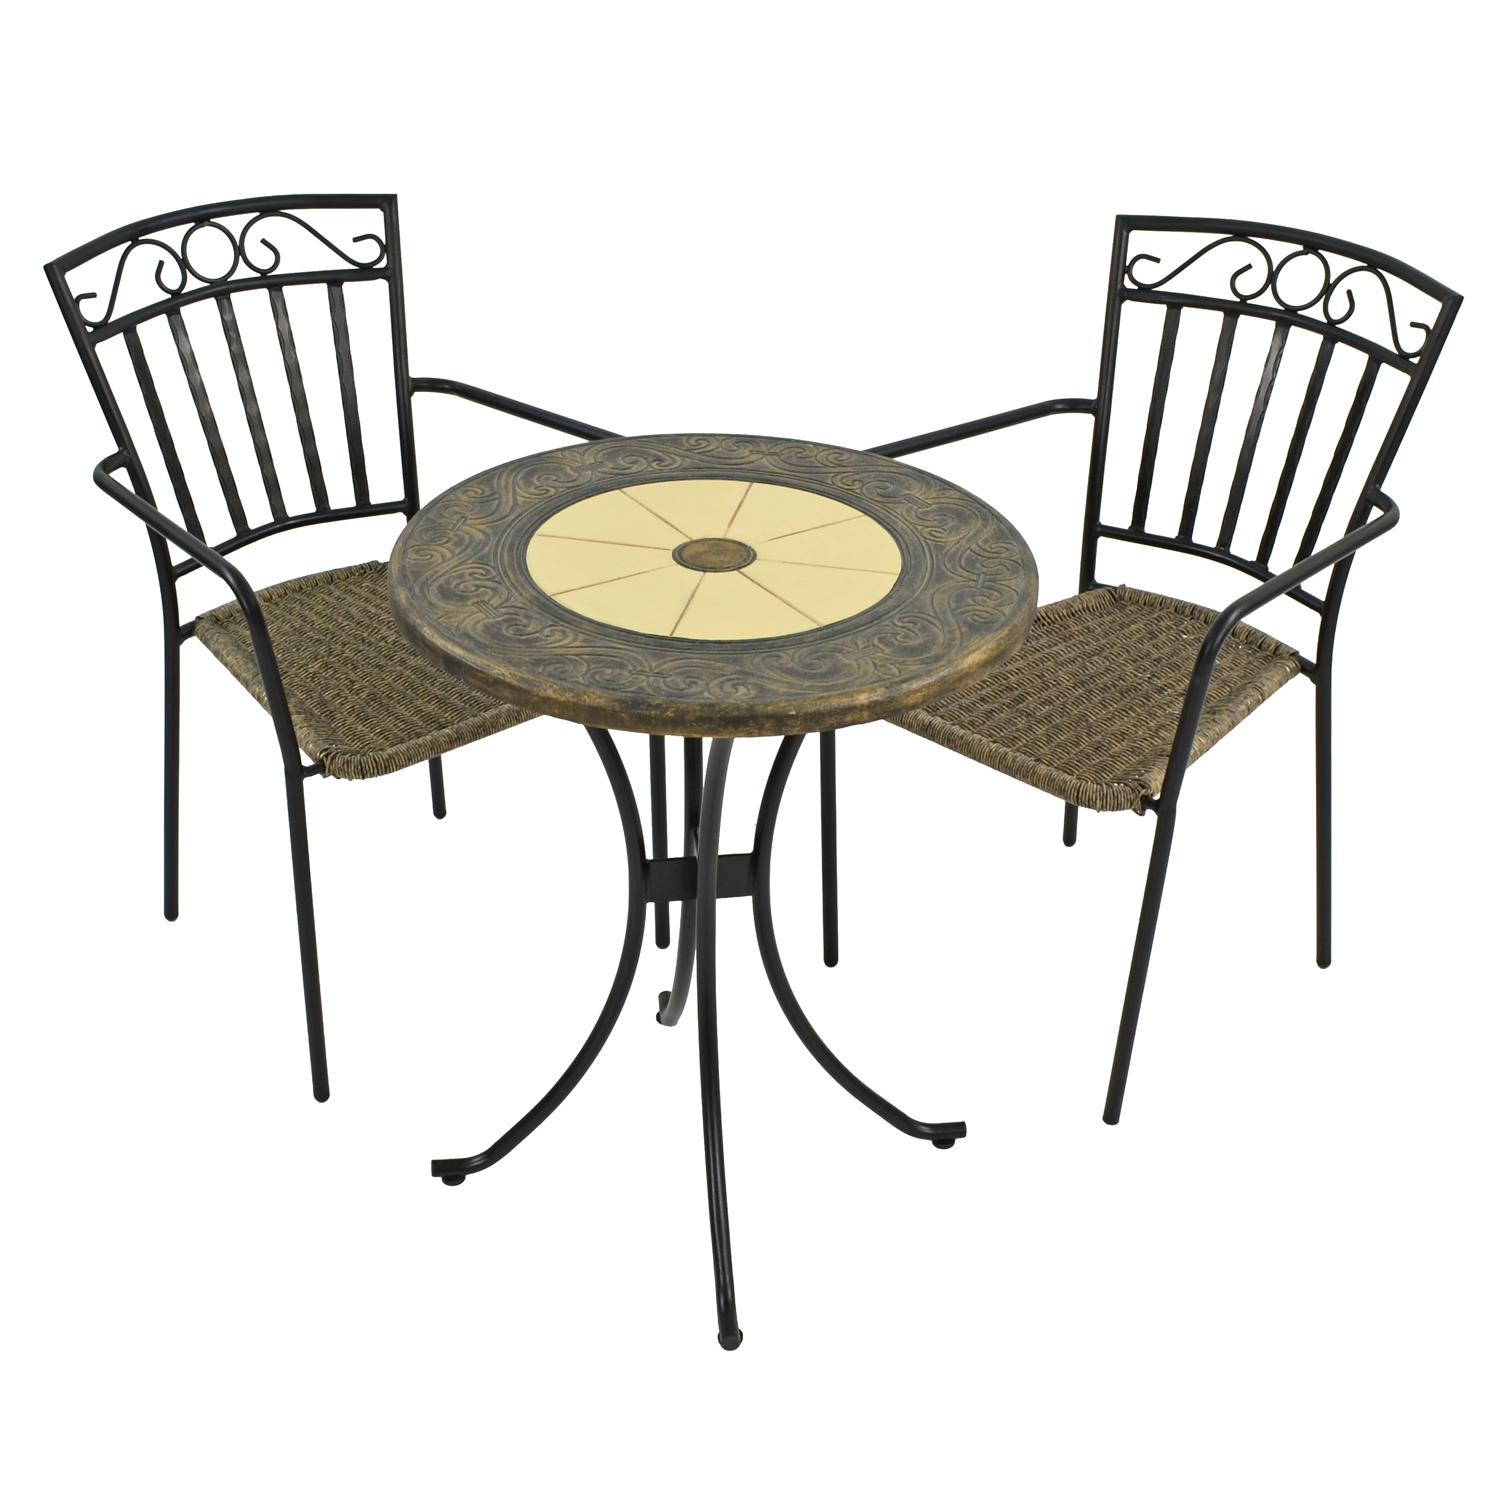 RENNES 60CM BISTRO WITH 2 MODENA CHAIRS SET WG1